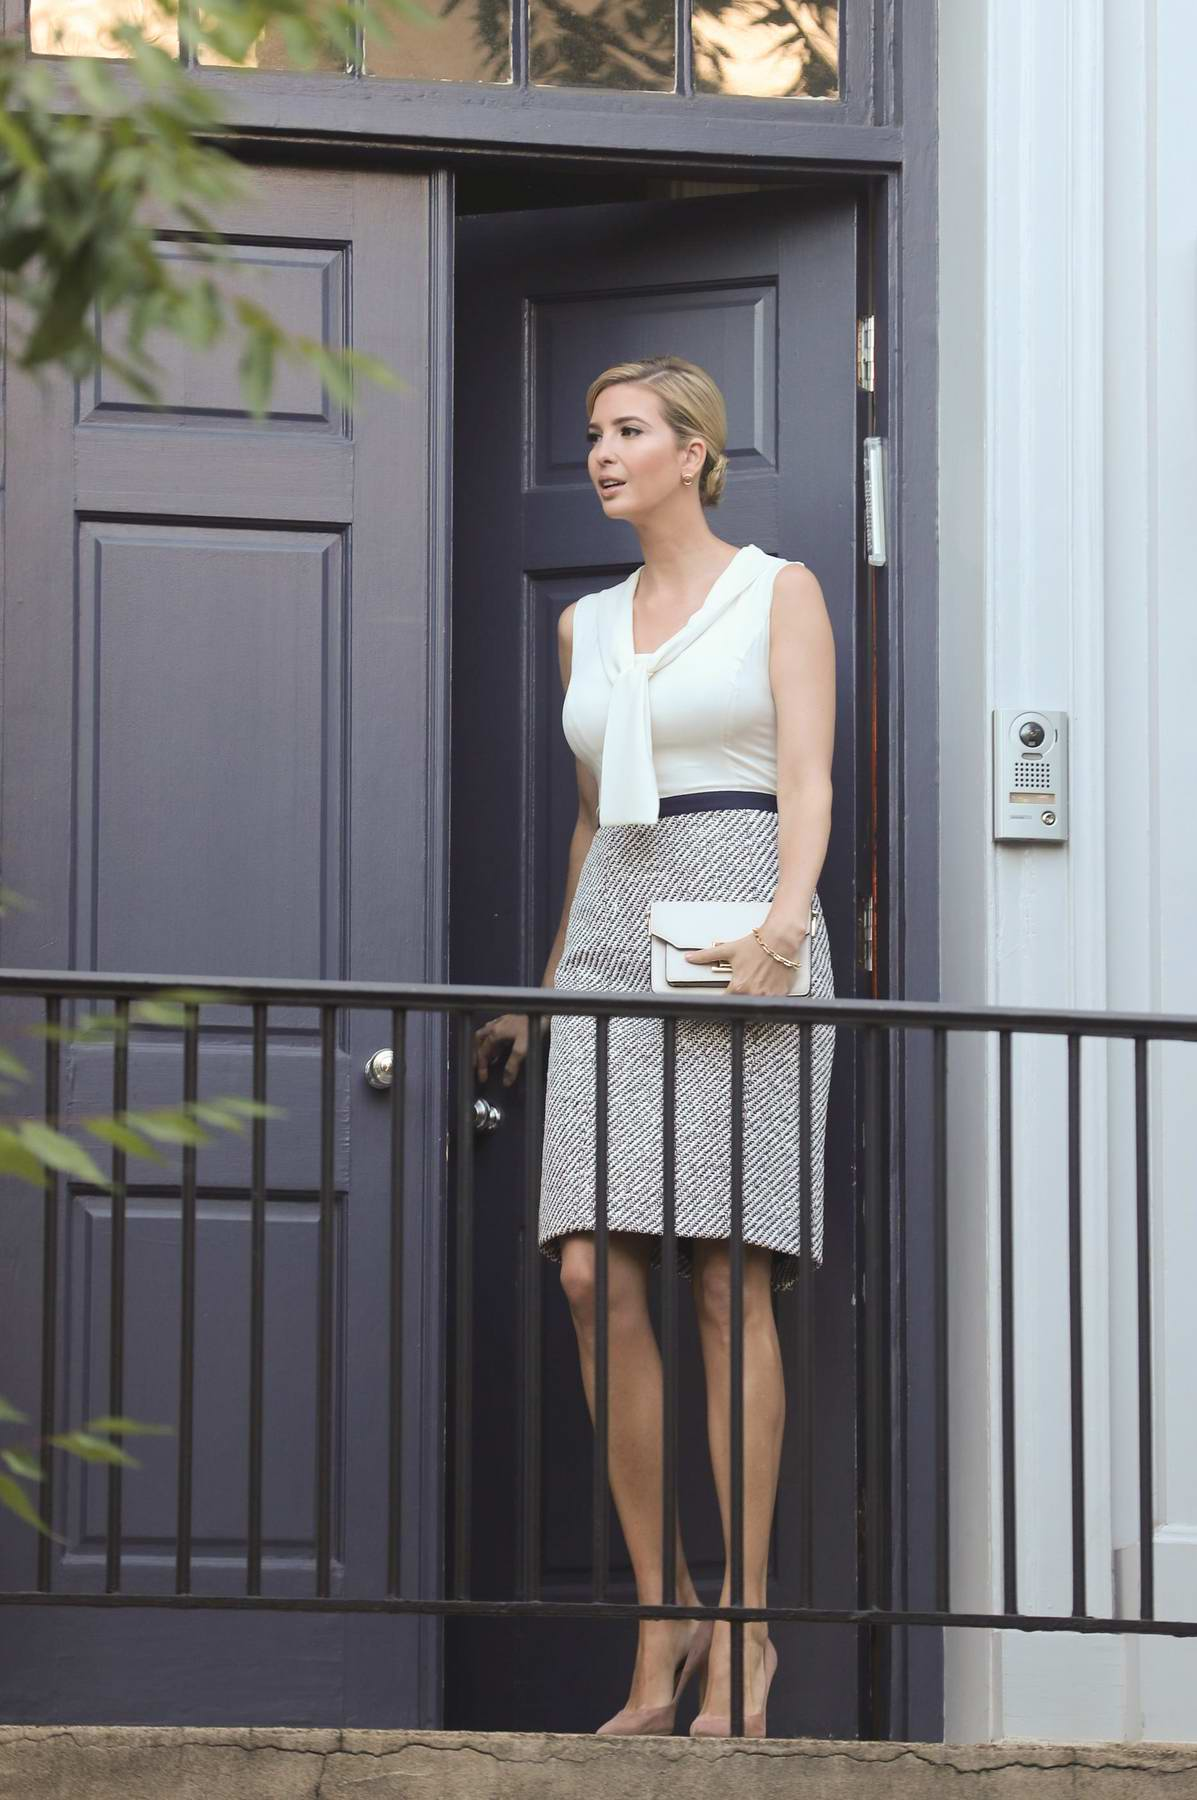 Ivanka Trump leaving her home and heading to work in Washington DC